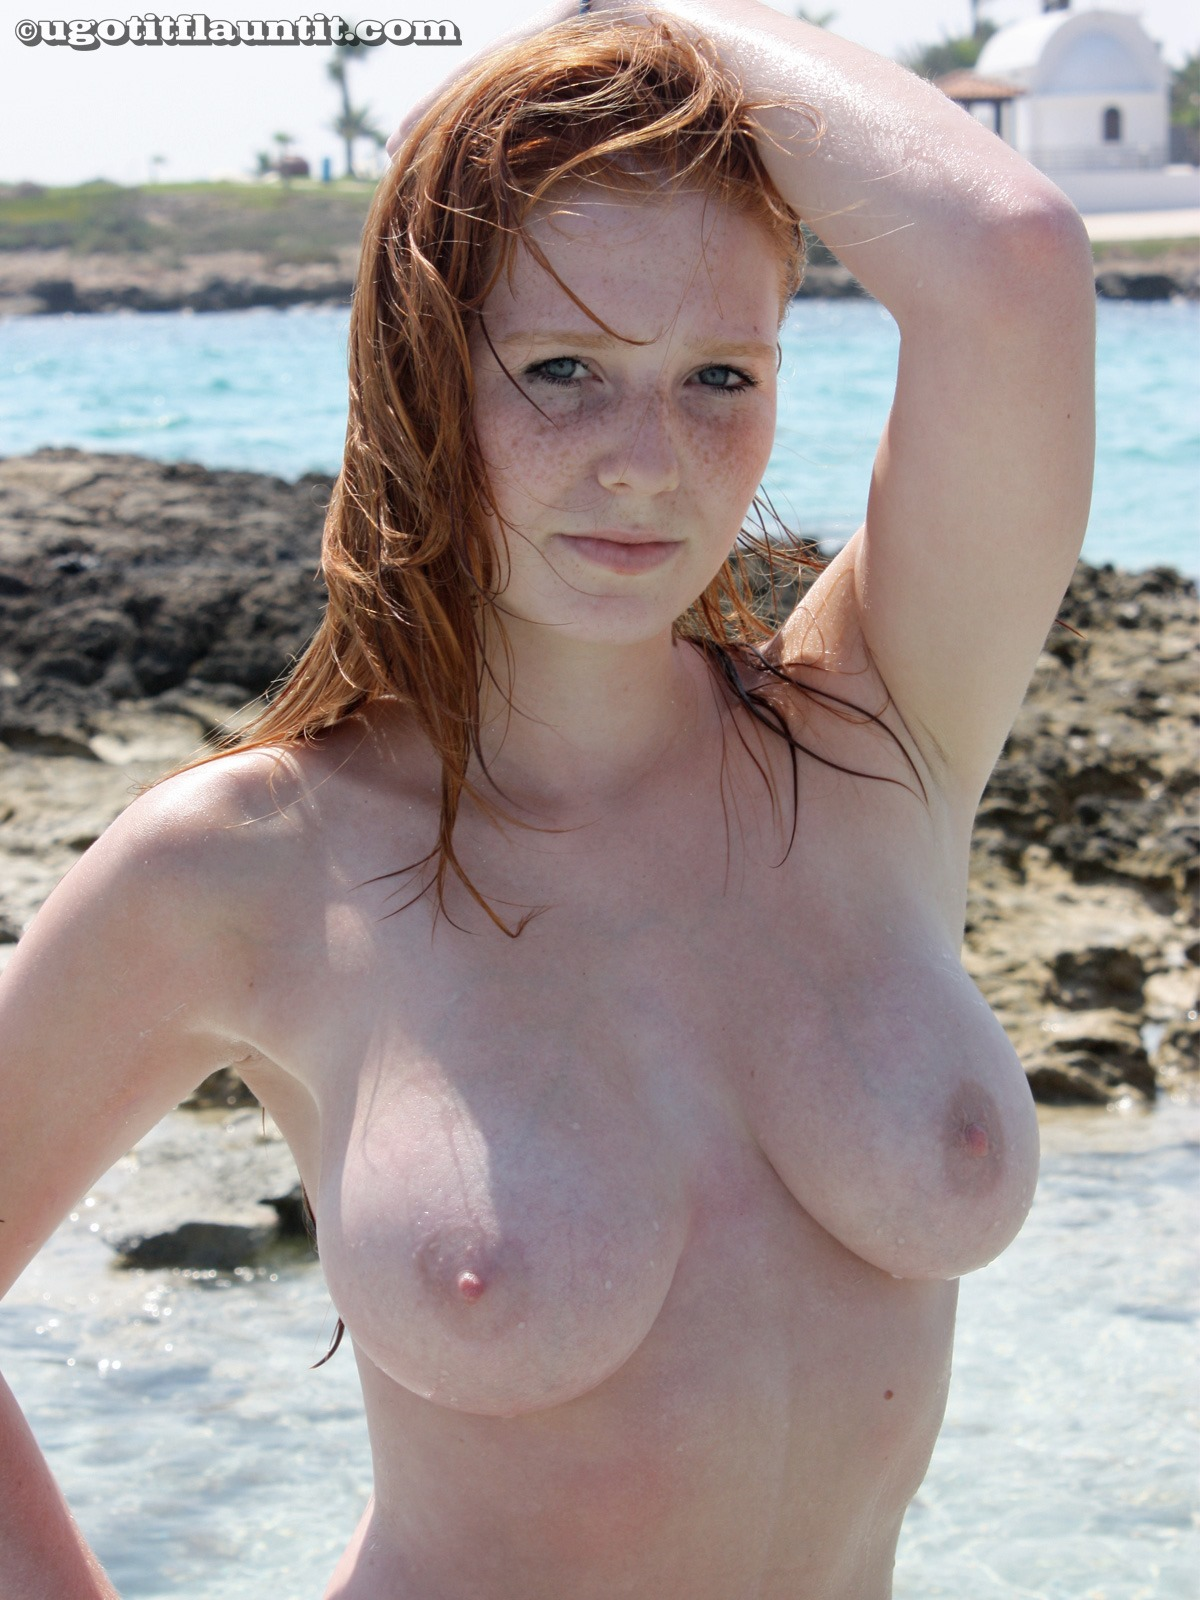 Infinitely possible cute naked girl with freckles